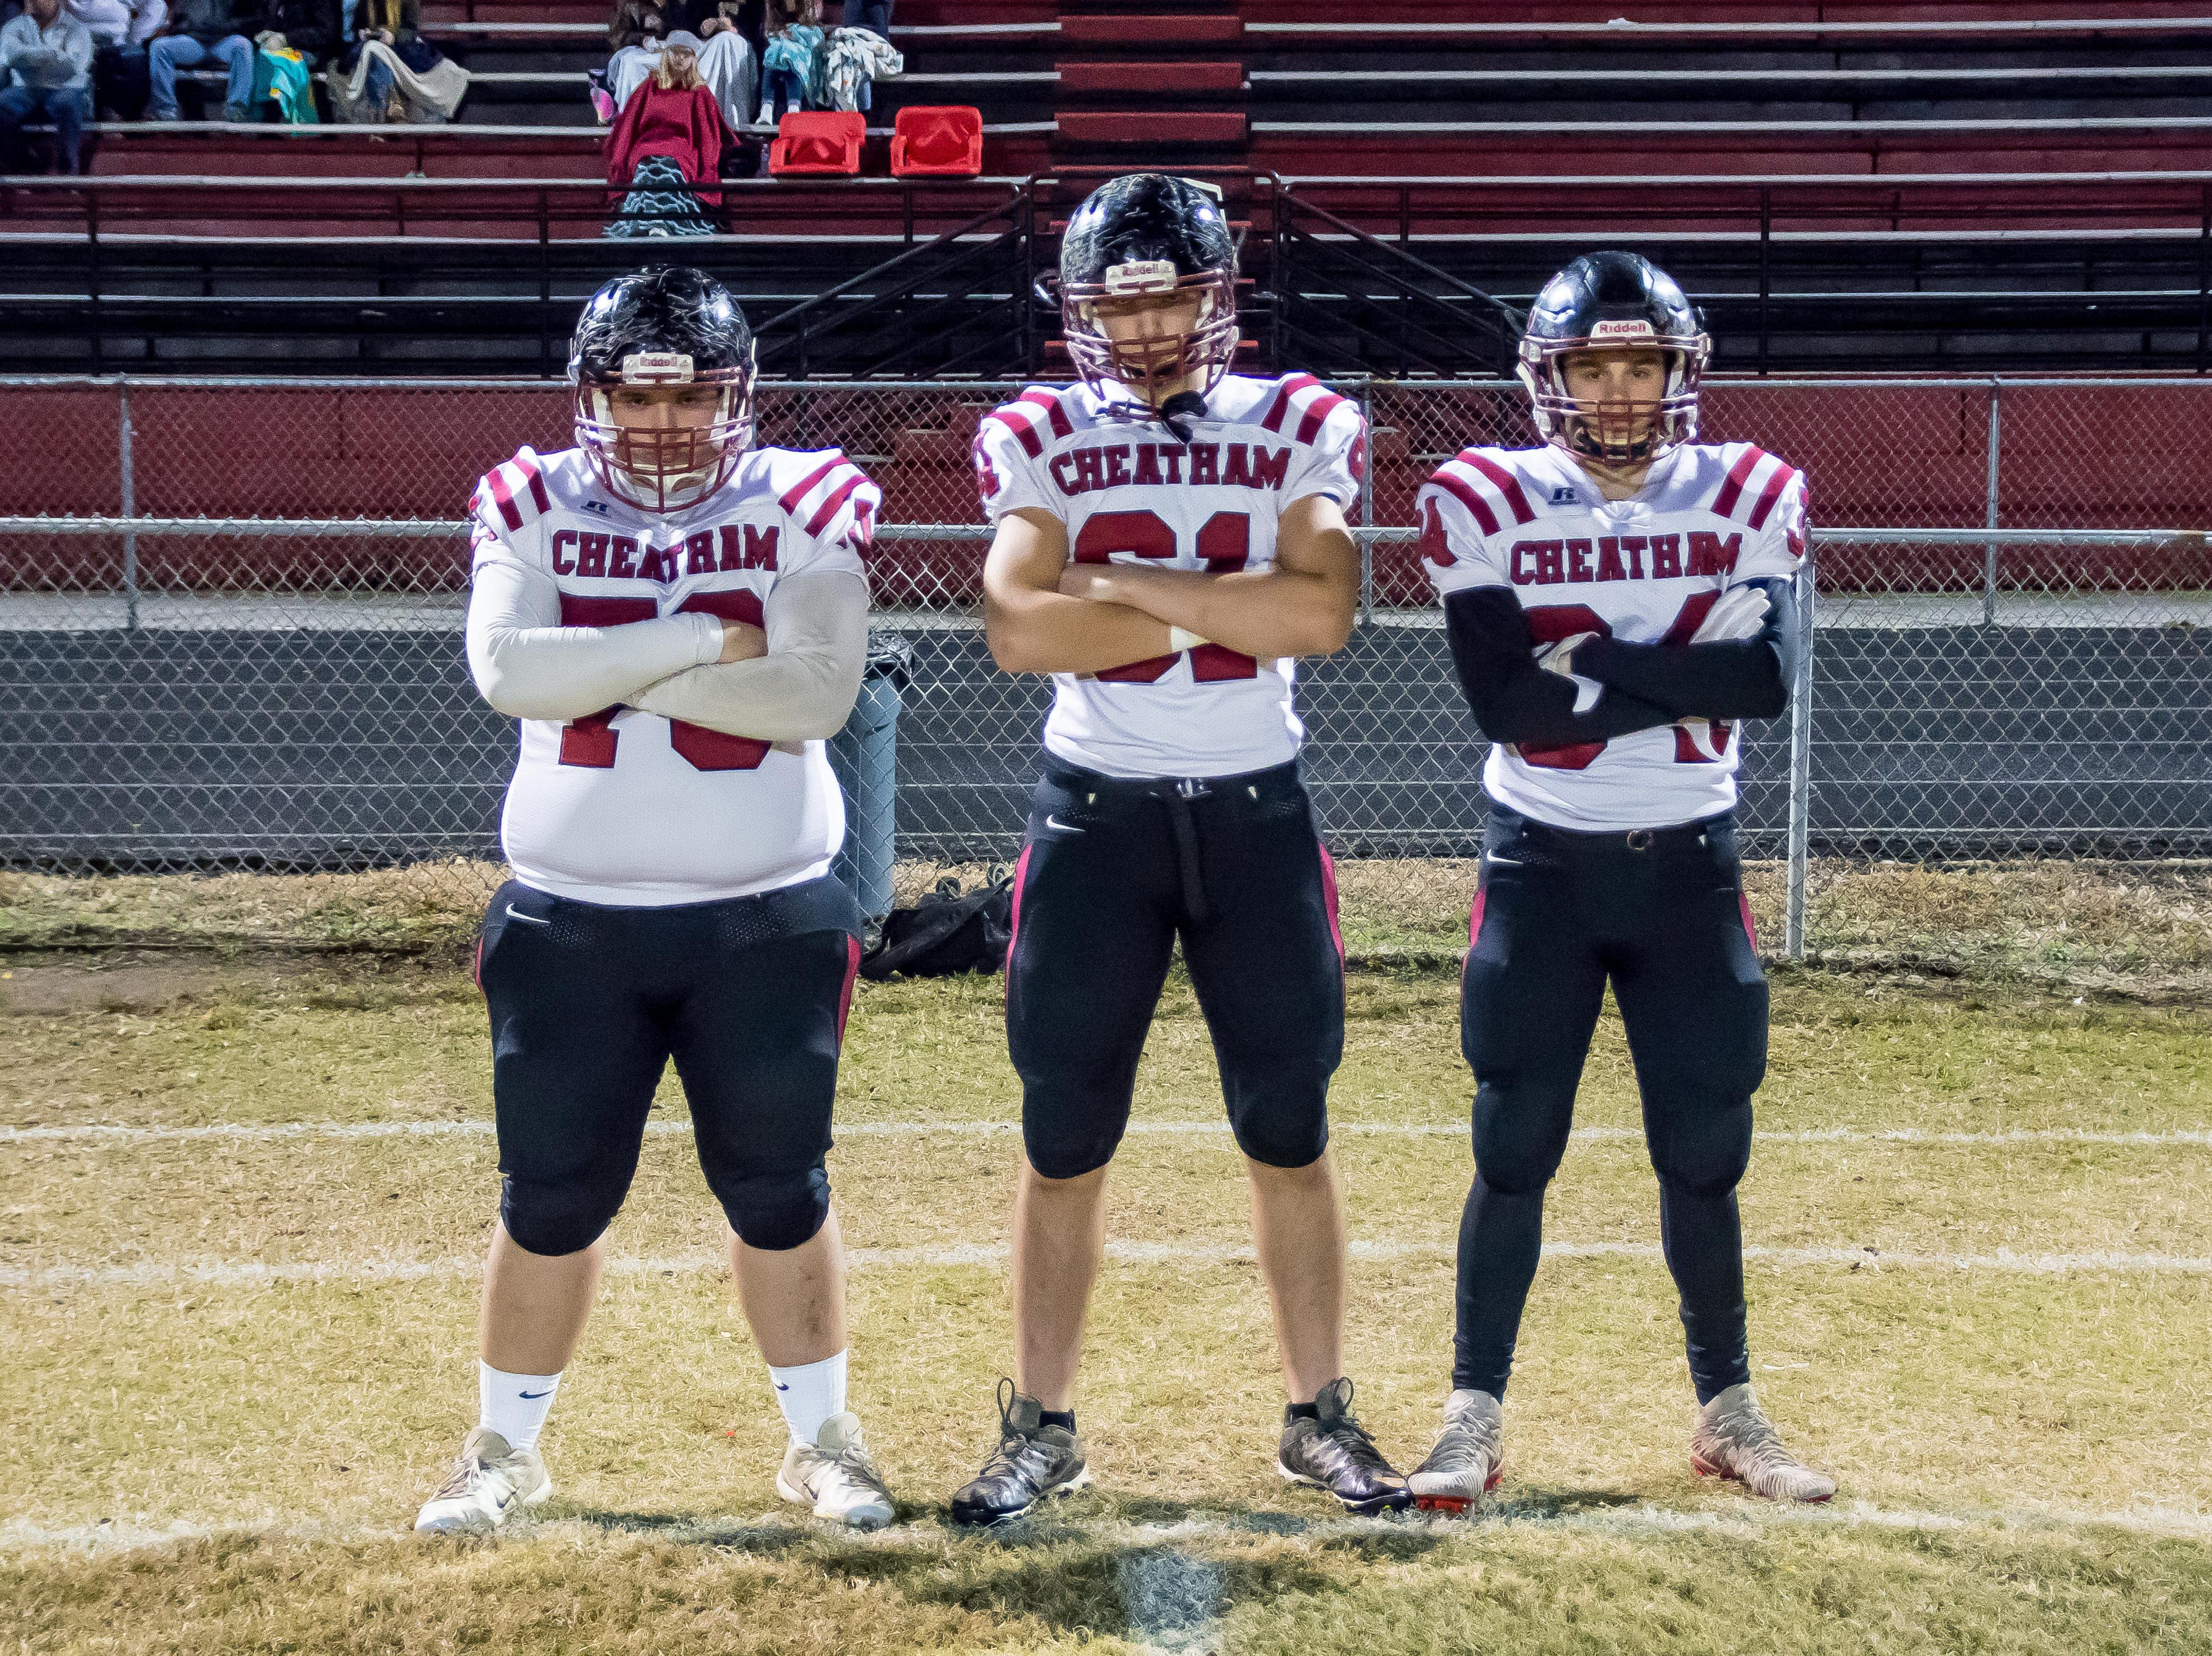 Cheatham County Cubs team captains, from left, were Jeffery Taylor,  Jameson Singleton and Walker Bunce.